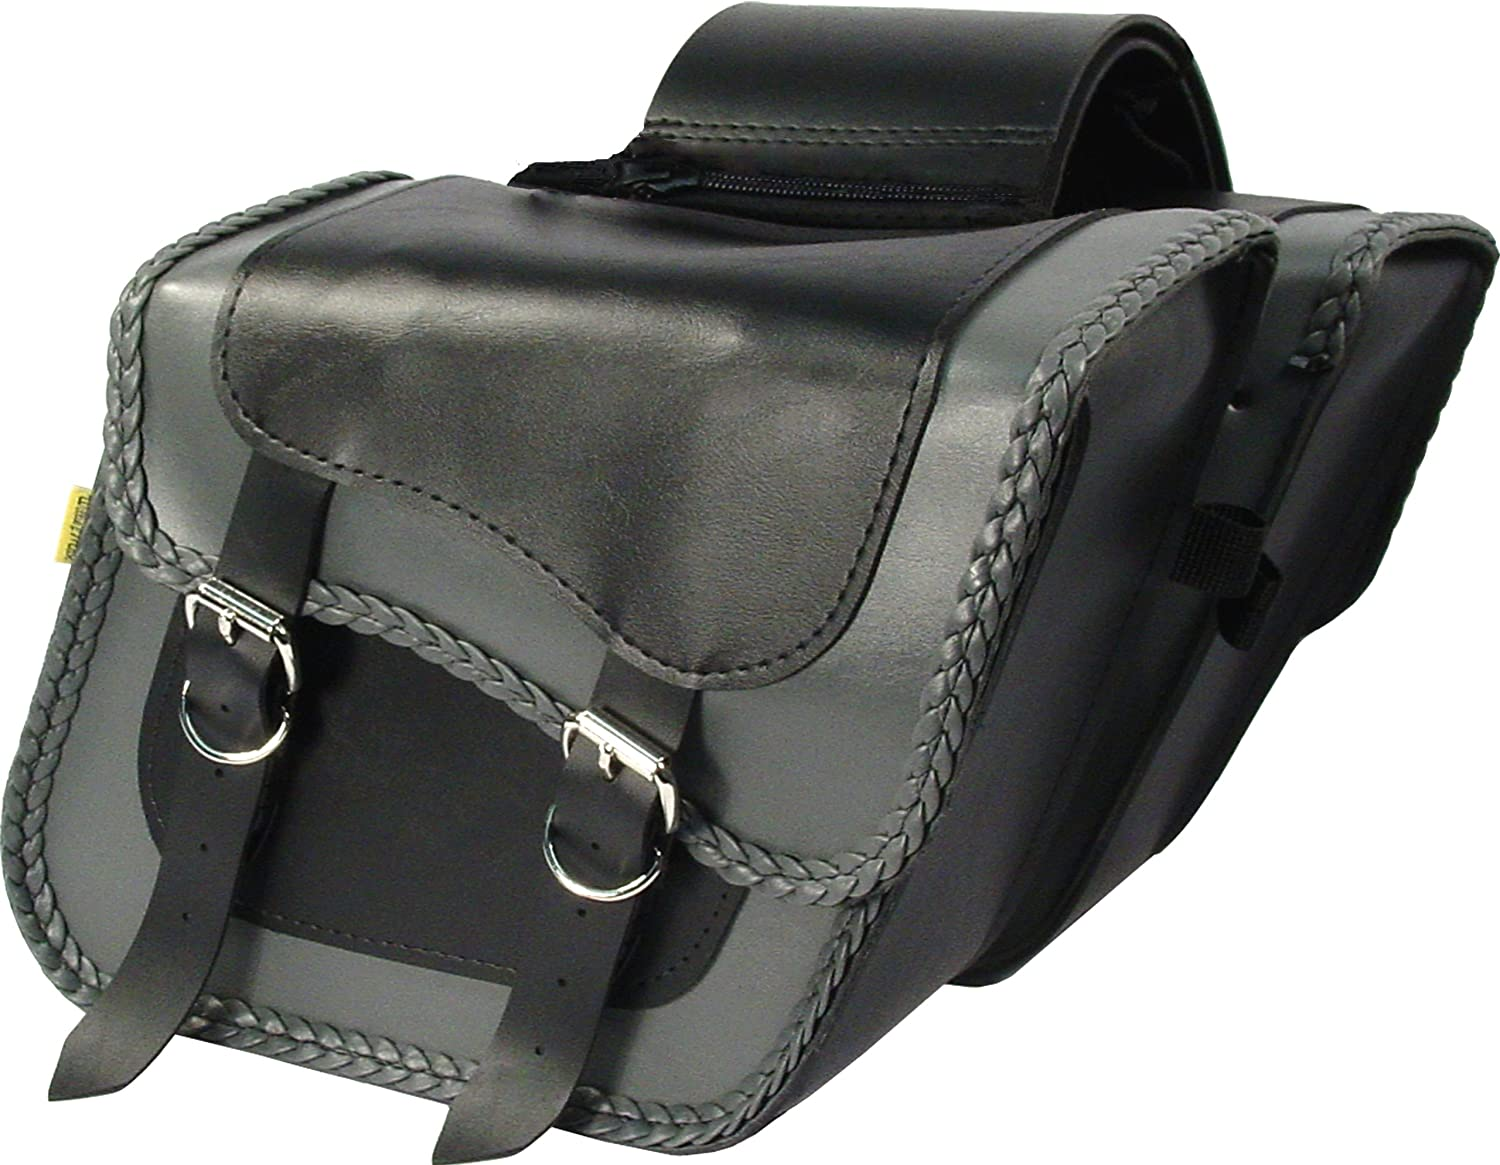 Black and Grey Dowco Willie /& Max 58705-20 Thunder Series: Synthetic Leather Standard Slant Motorcycle Saddlebag Set 10 Liter Each//20 Liter Total Capacity Universal Fit